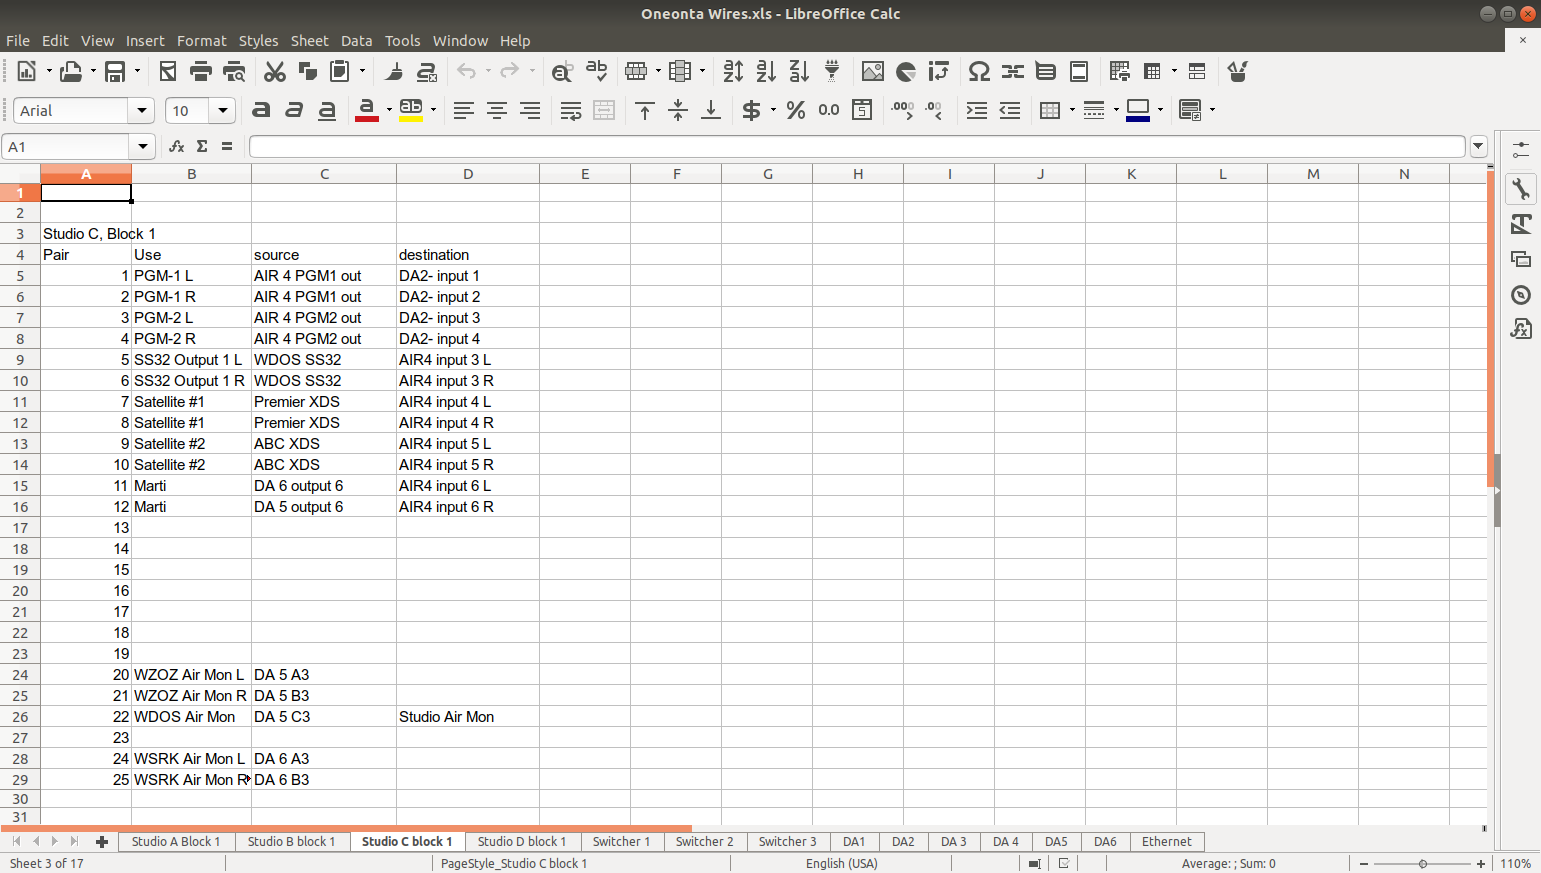 Screen shot of wire run spreadsheet